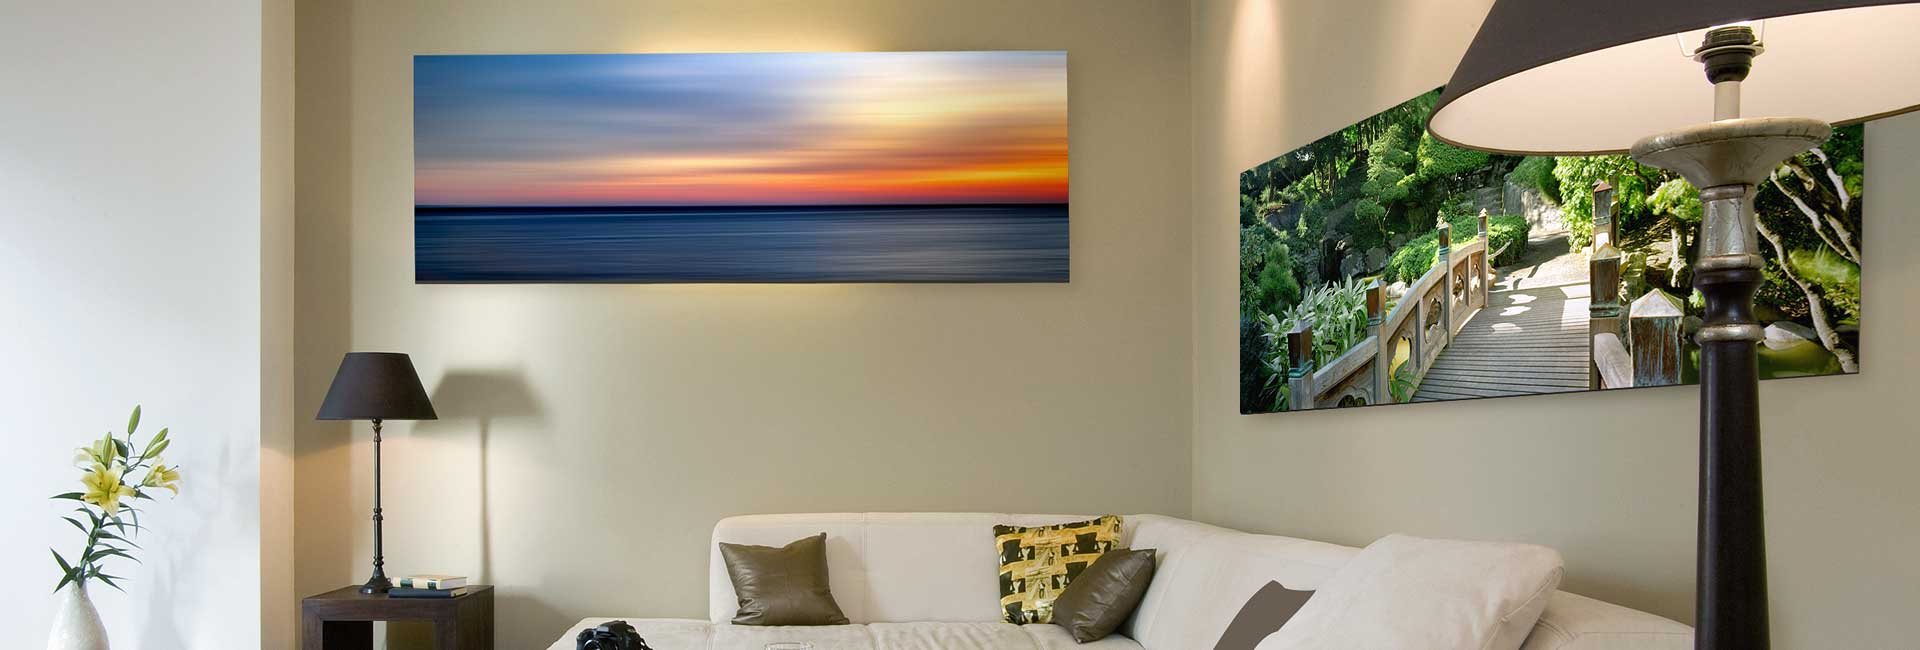 Framed landscape photographs – gallery fine art prints